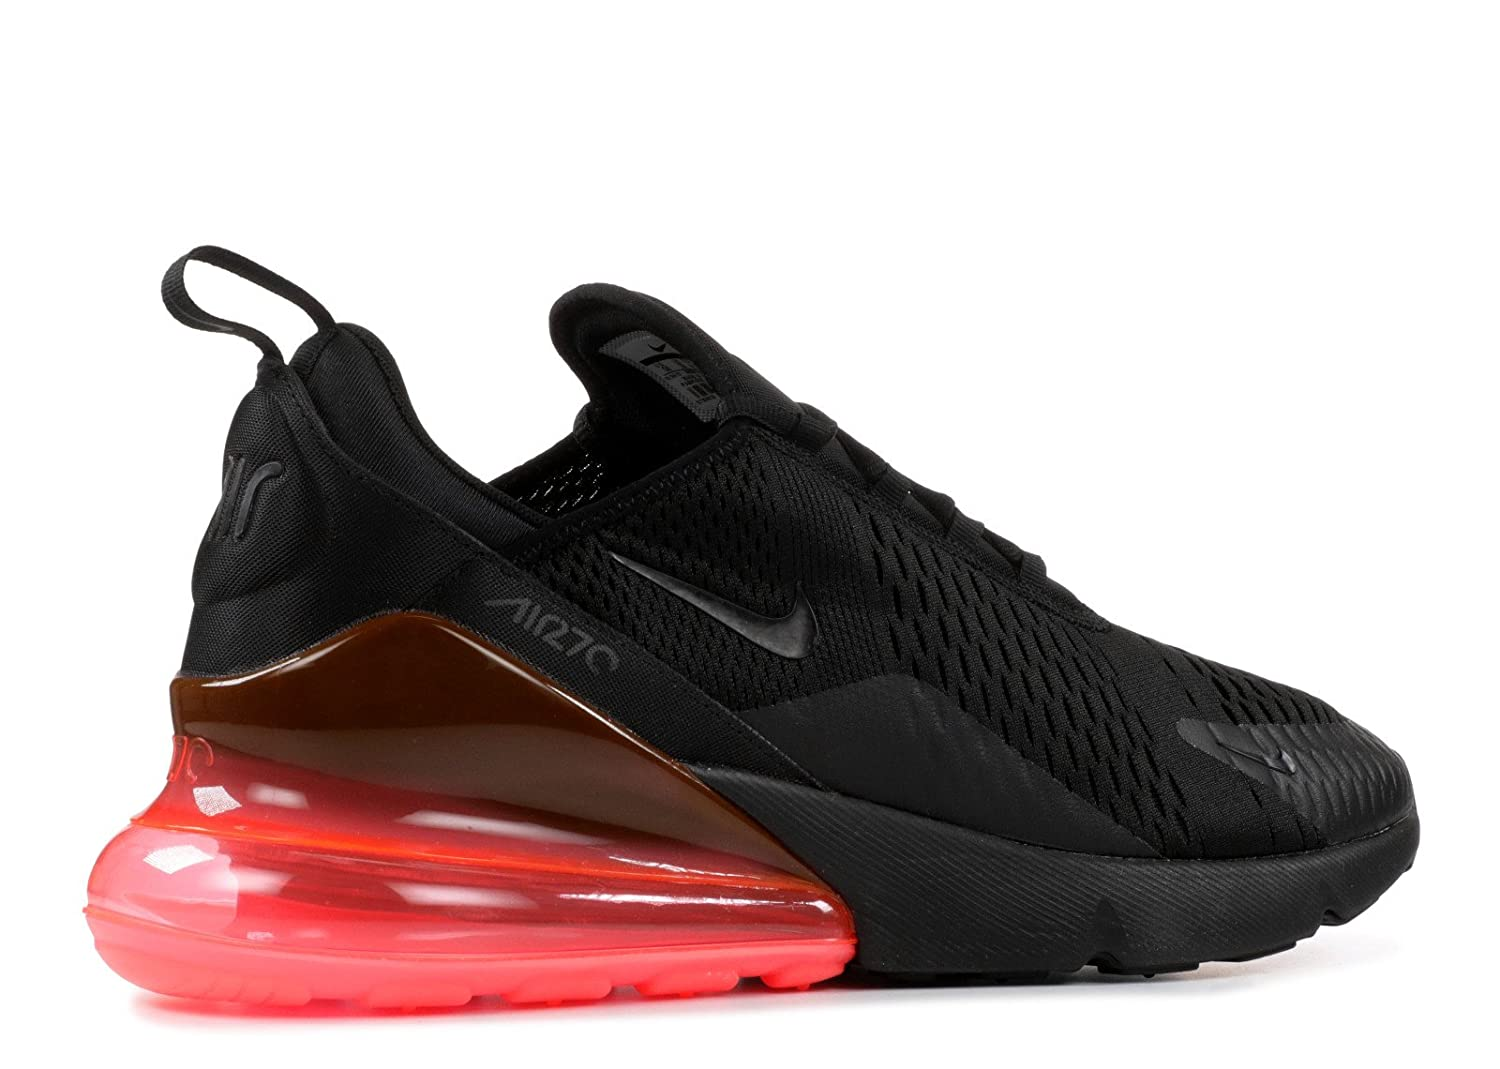 timeless design 6508b 46c2c Amazon.com   Nike Mens Air Max 270 Running Shoes   Road Running